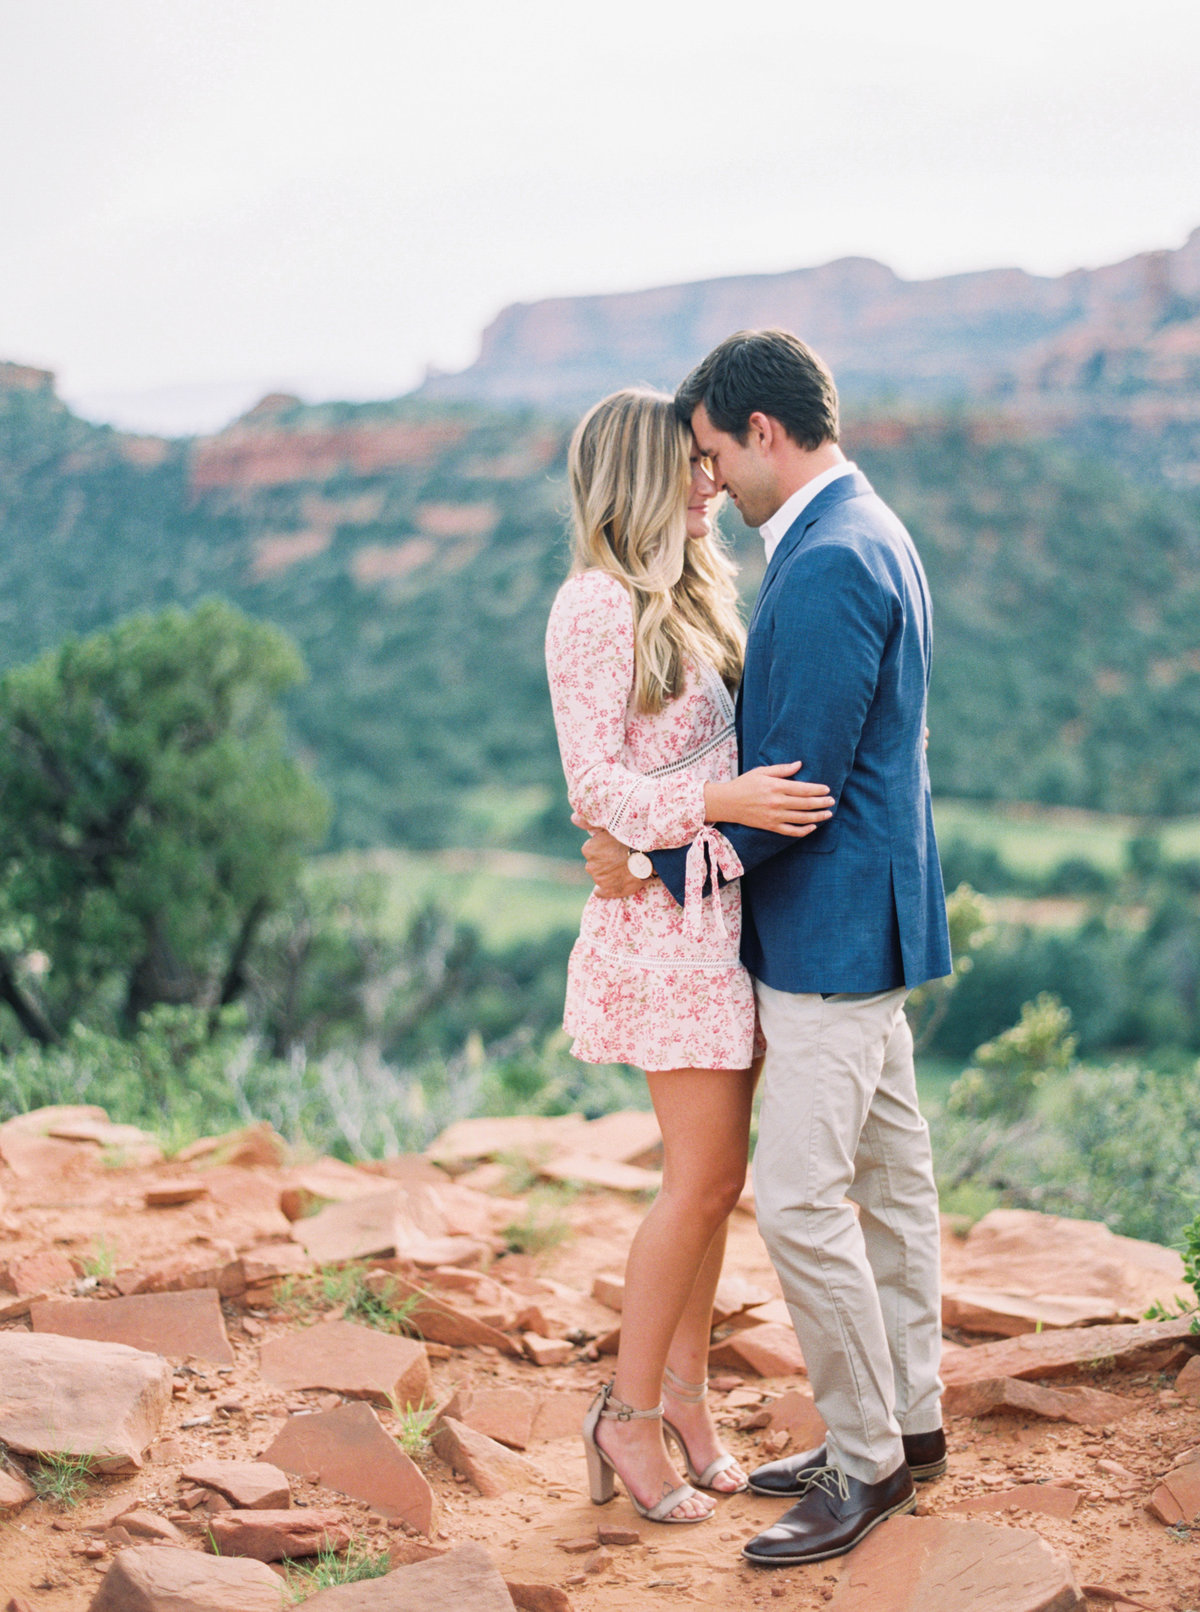 Sedona Arizona Engagement Session - Mary Claire Photography-5